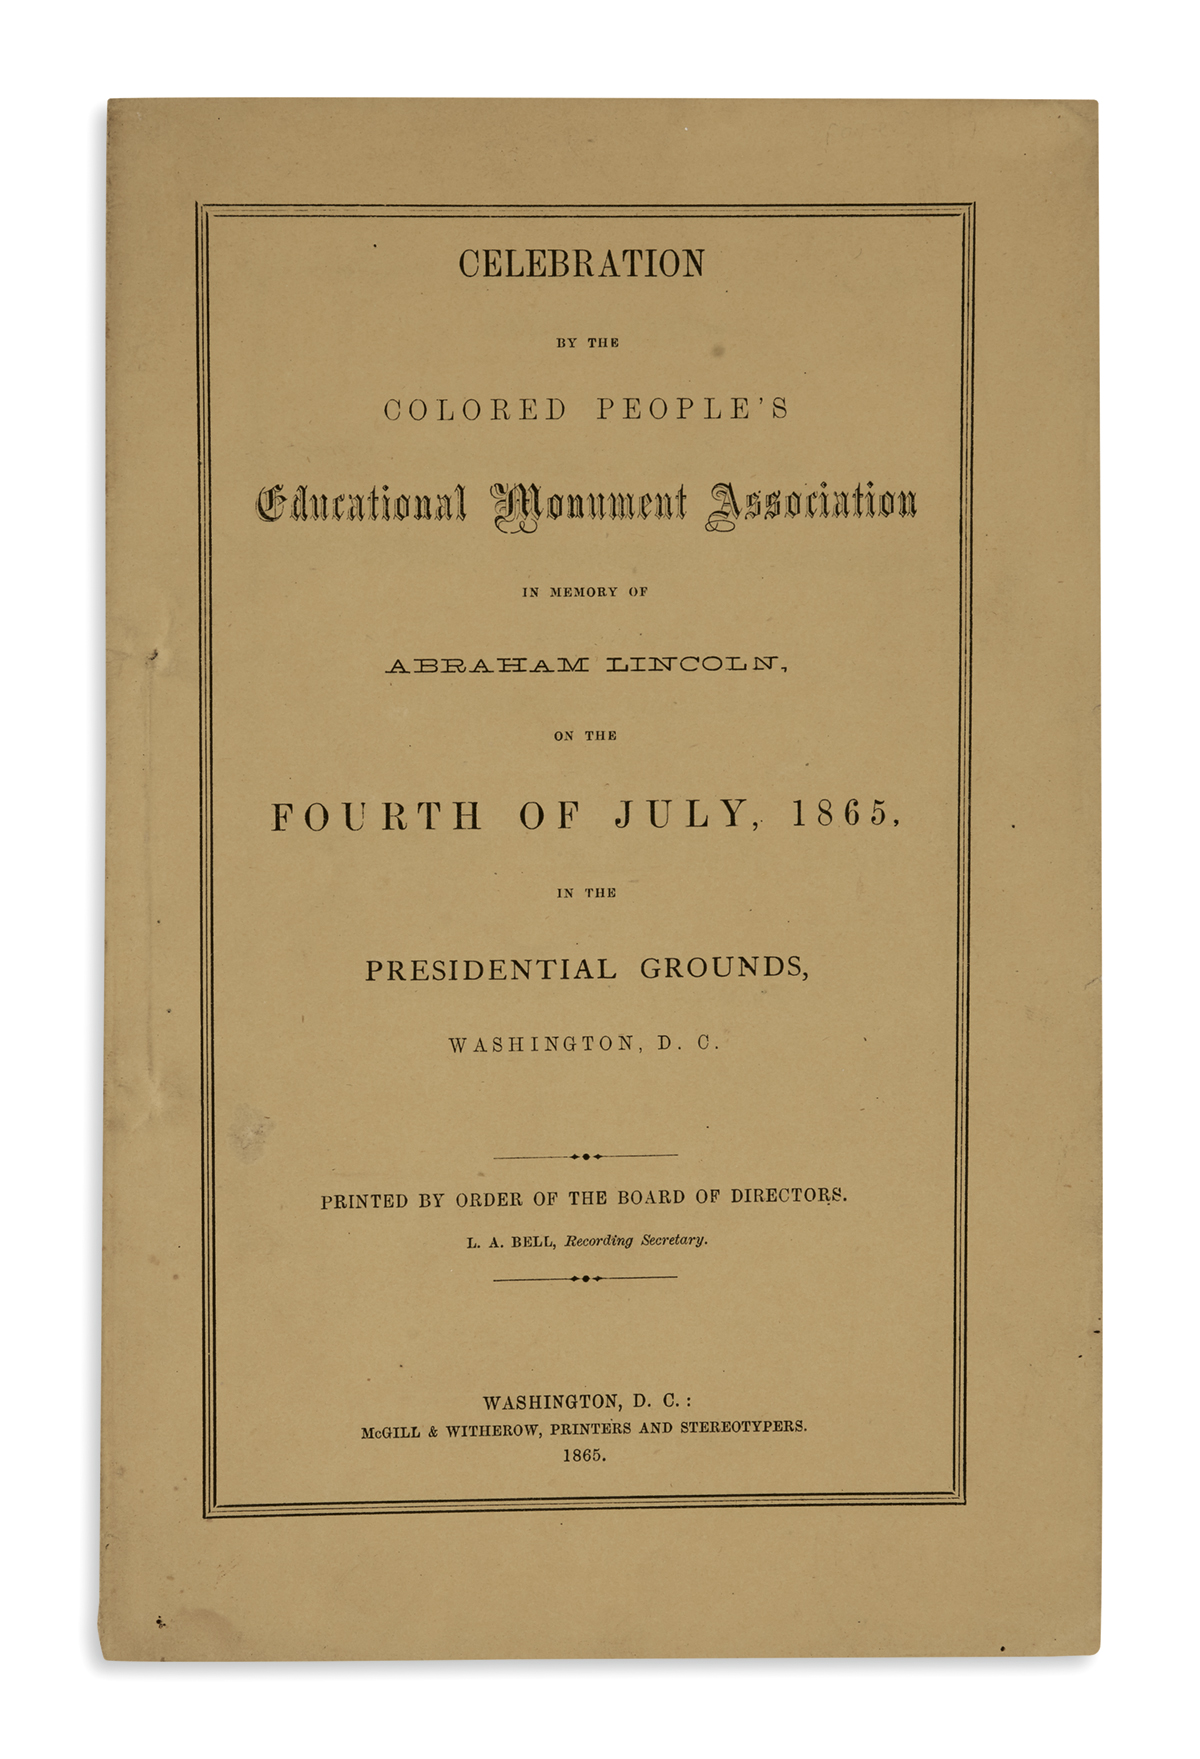 (BOOKS-AND-PAMPHLETS)-Celebration-by-the-Colored-Peoples-Edu